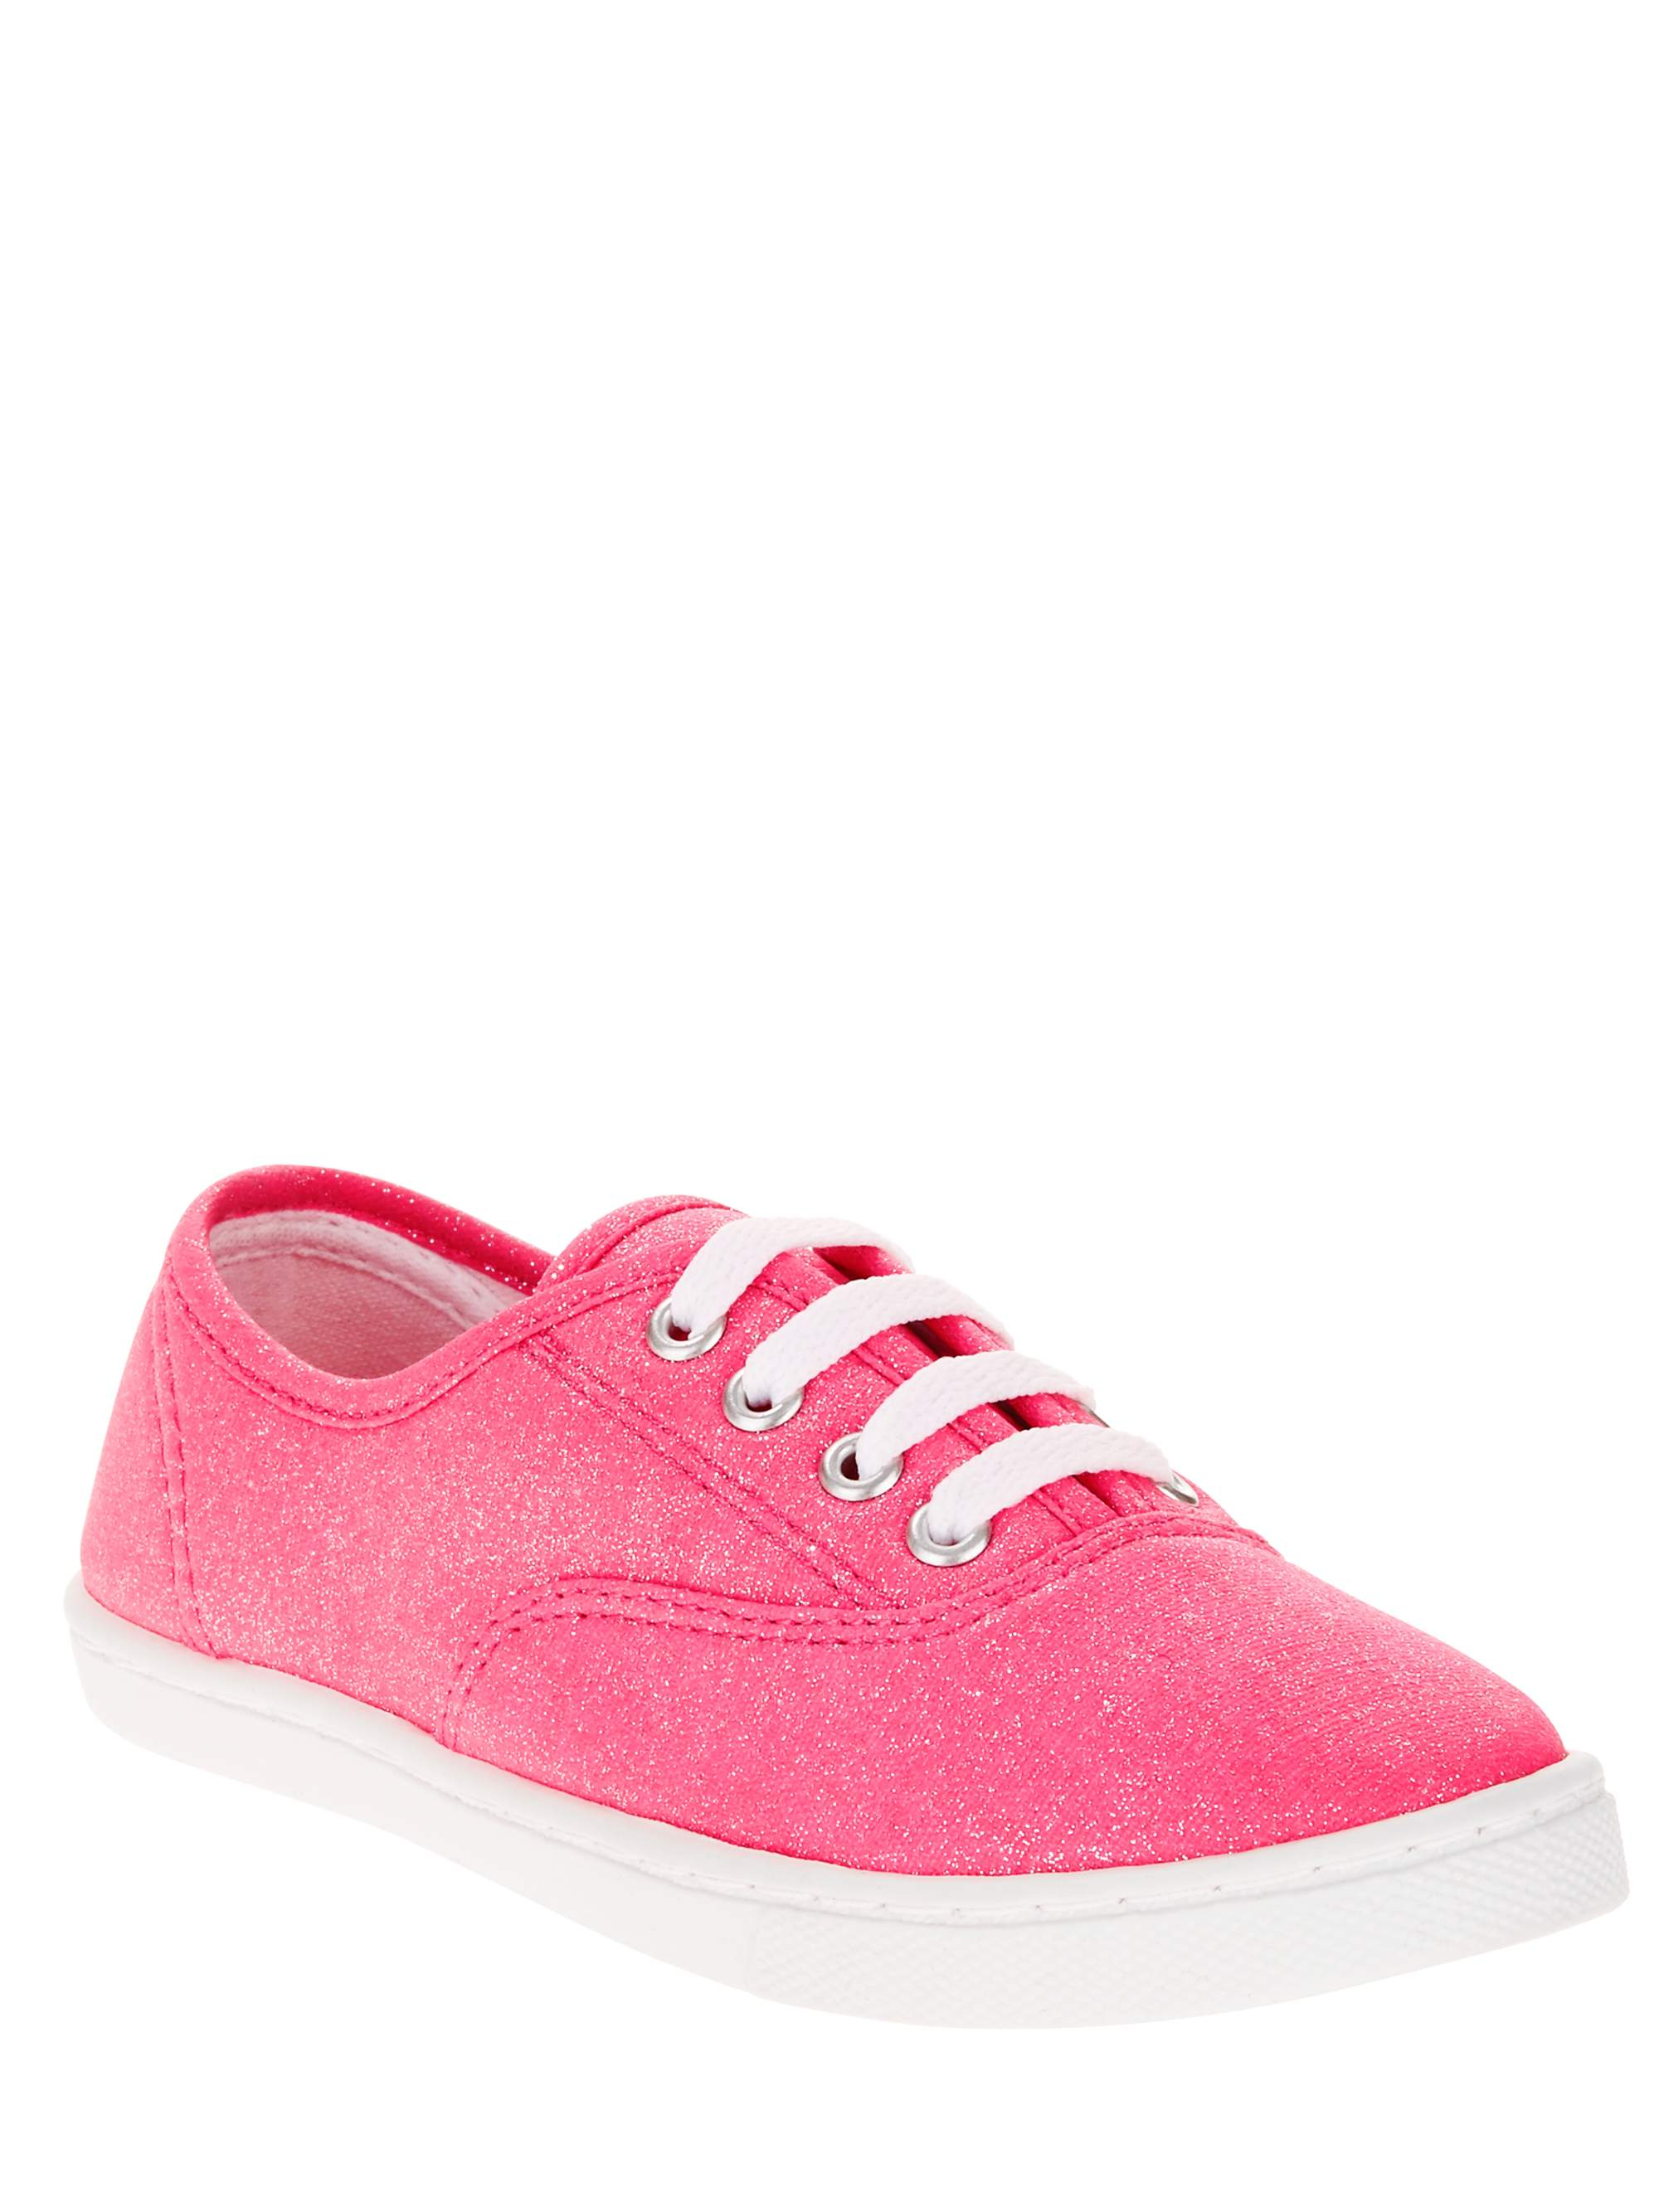 NEW Youth Girls Faded Glory Hot Pink Glitter Canvas Sneakers Shoes Size 5